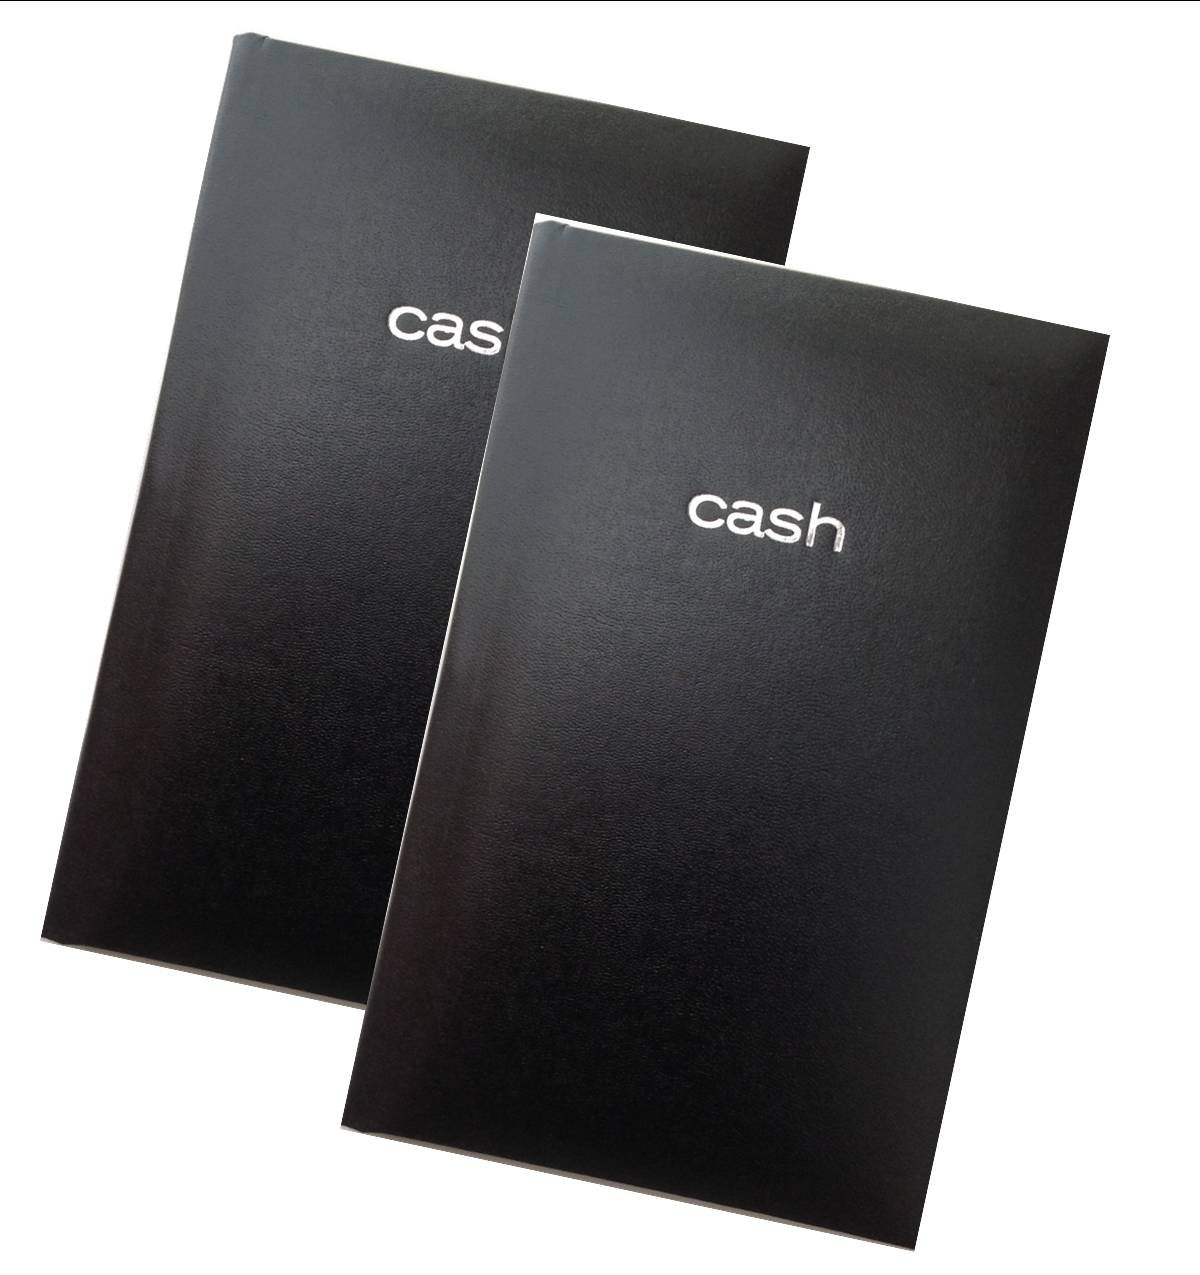 Mead Cash Book, 7-15/16 x 5-1/8 inches, 144 pages Hardbound Black Cover (64582) - Set of 2 Books by Mead